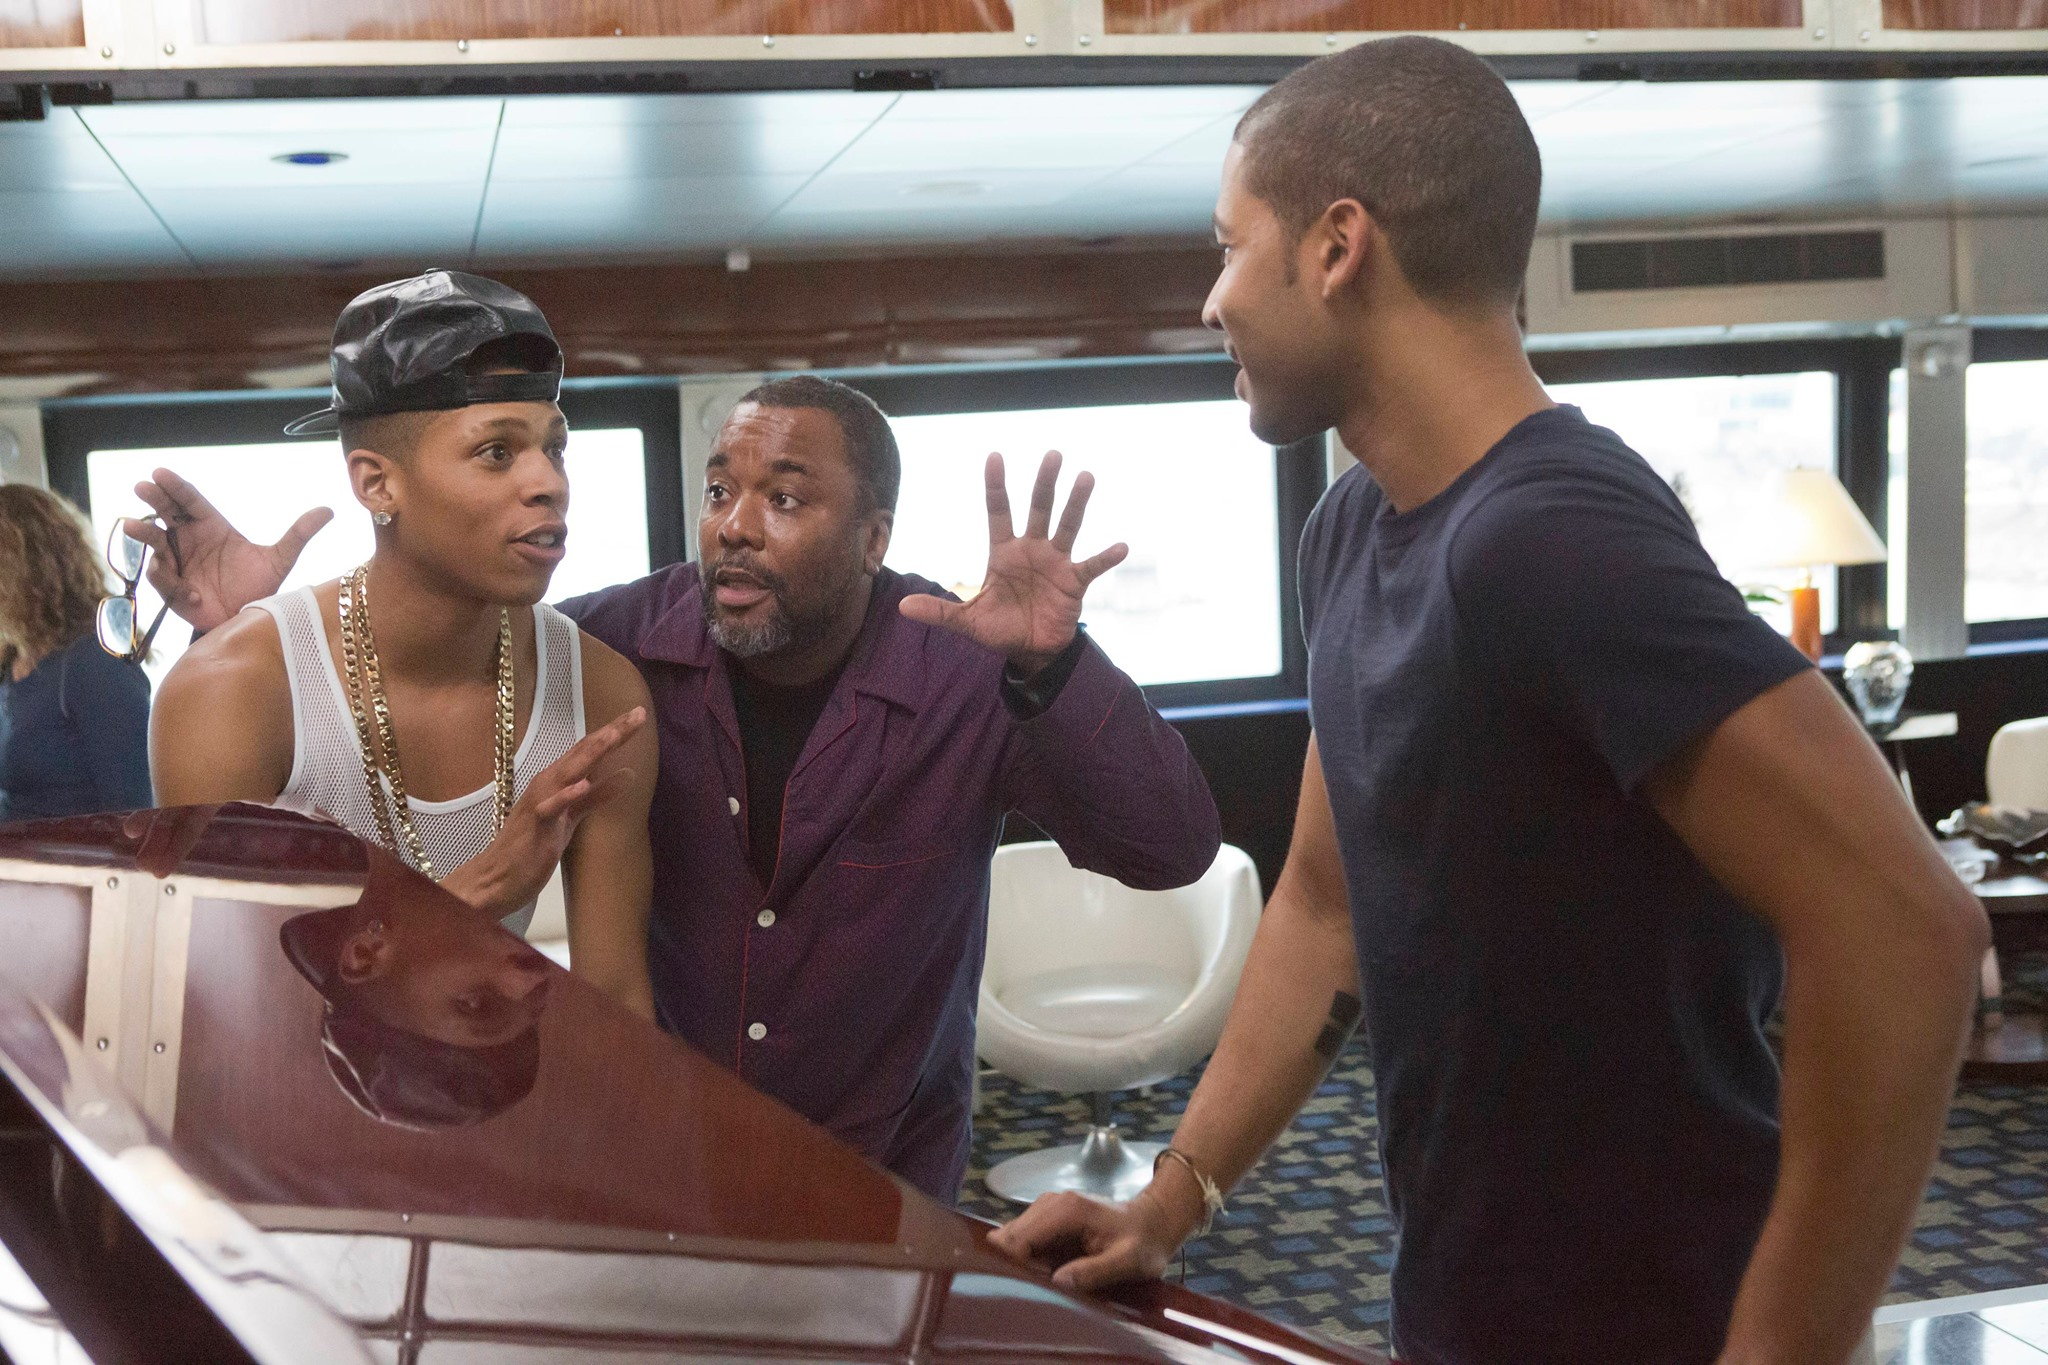 Empire - Lee Daniels, Bryshere Gray and Jussie Smollett